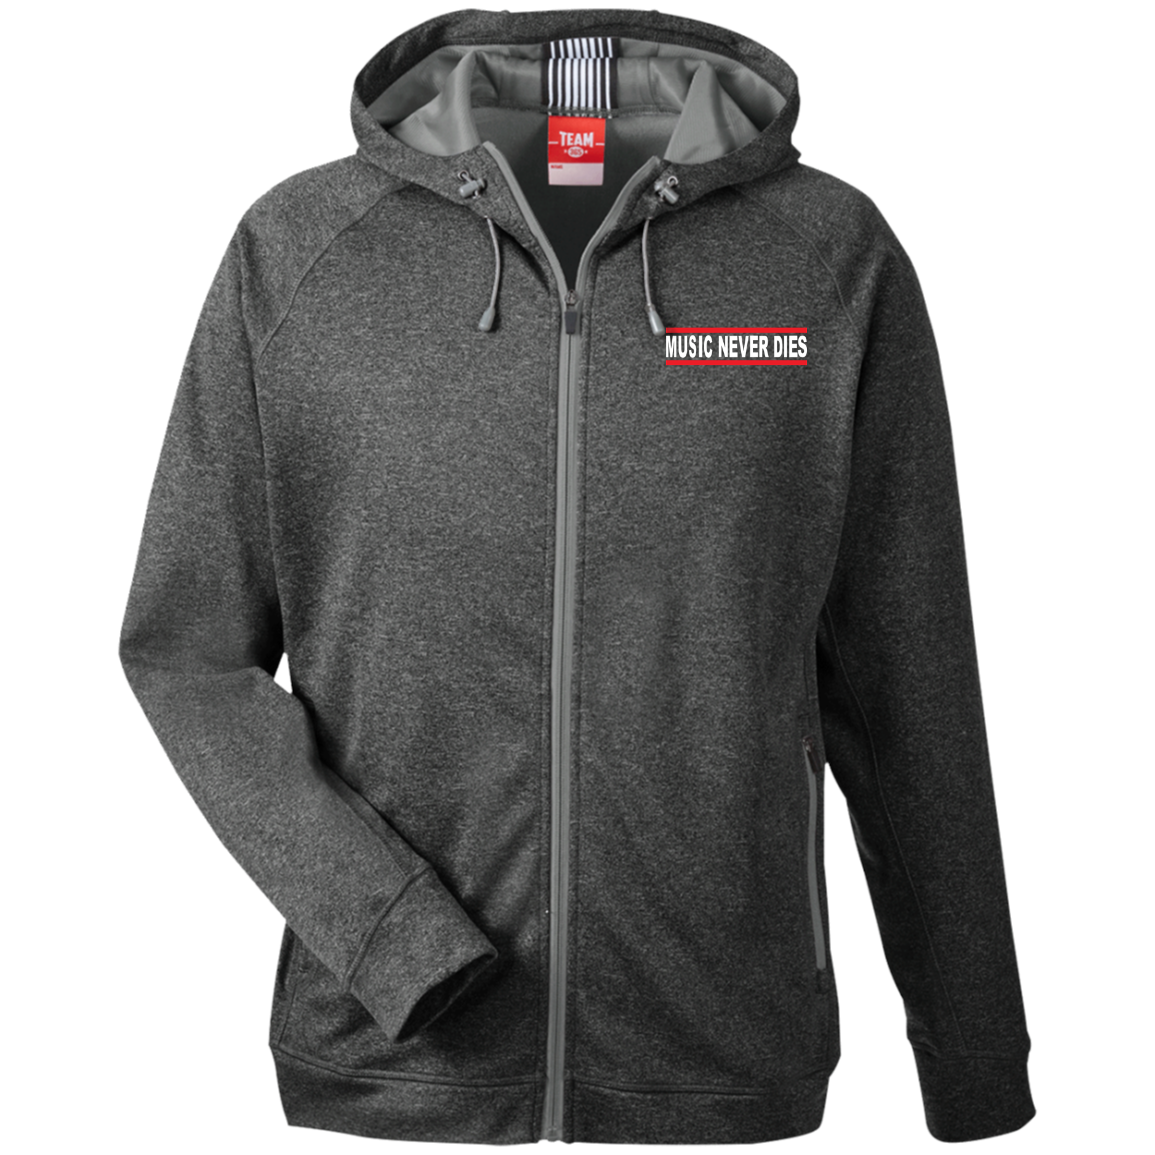 Men's Performance Hooded Jacket